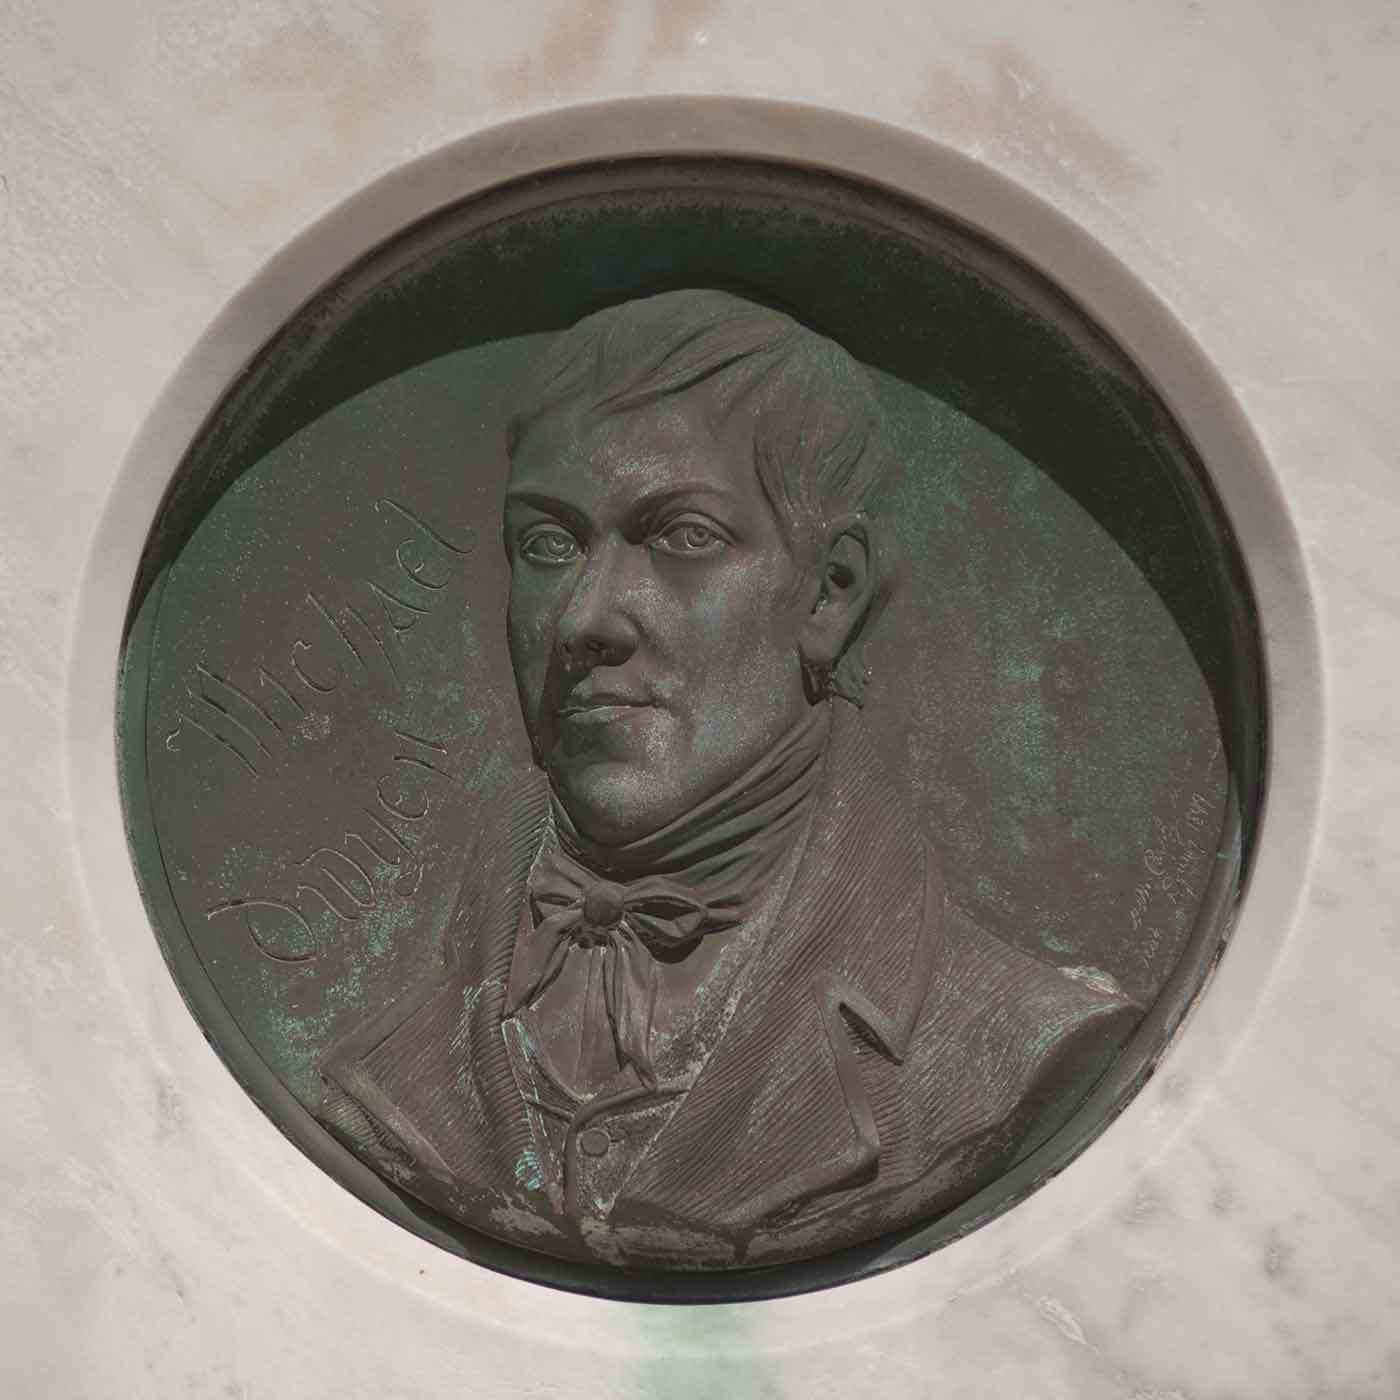 Bronze portrait of a man set in a memorial stone. - click to view larger image